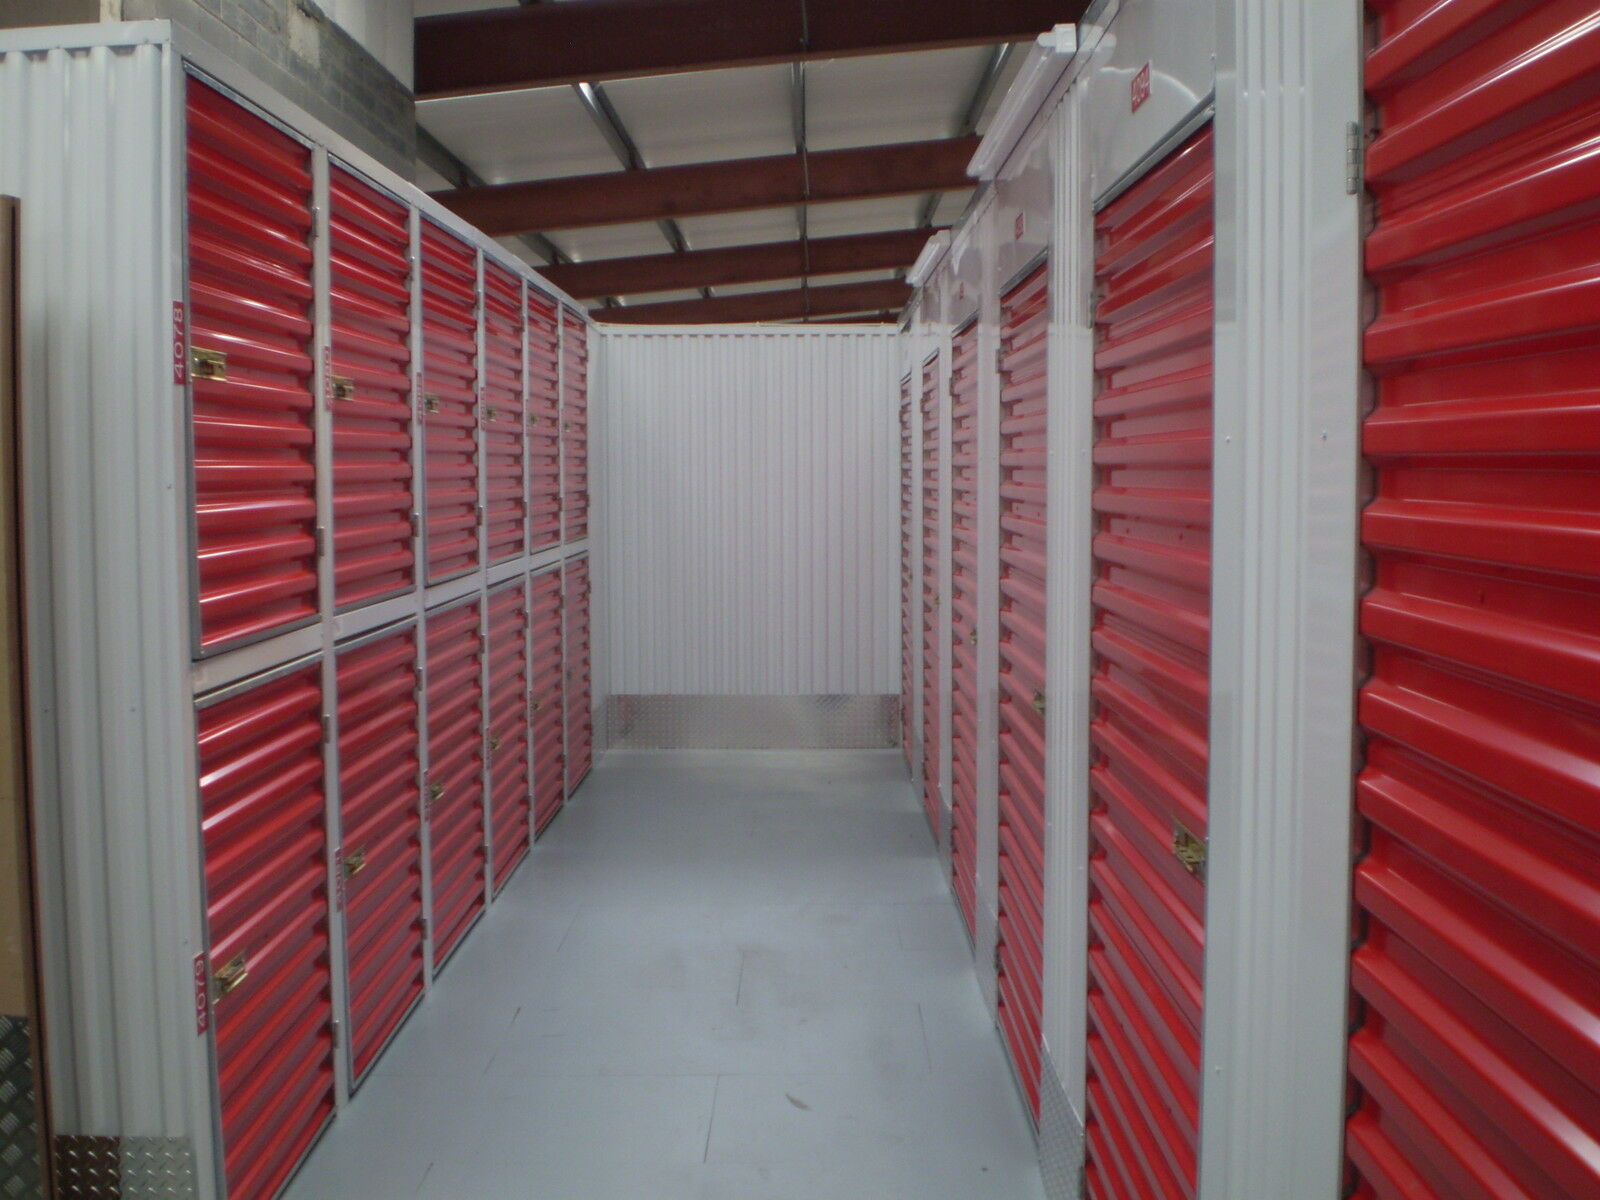 Self-Storage Tradecounter